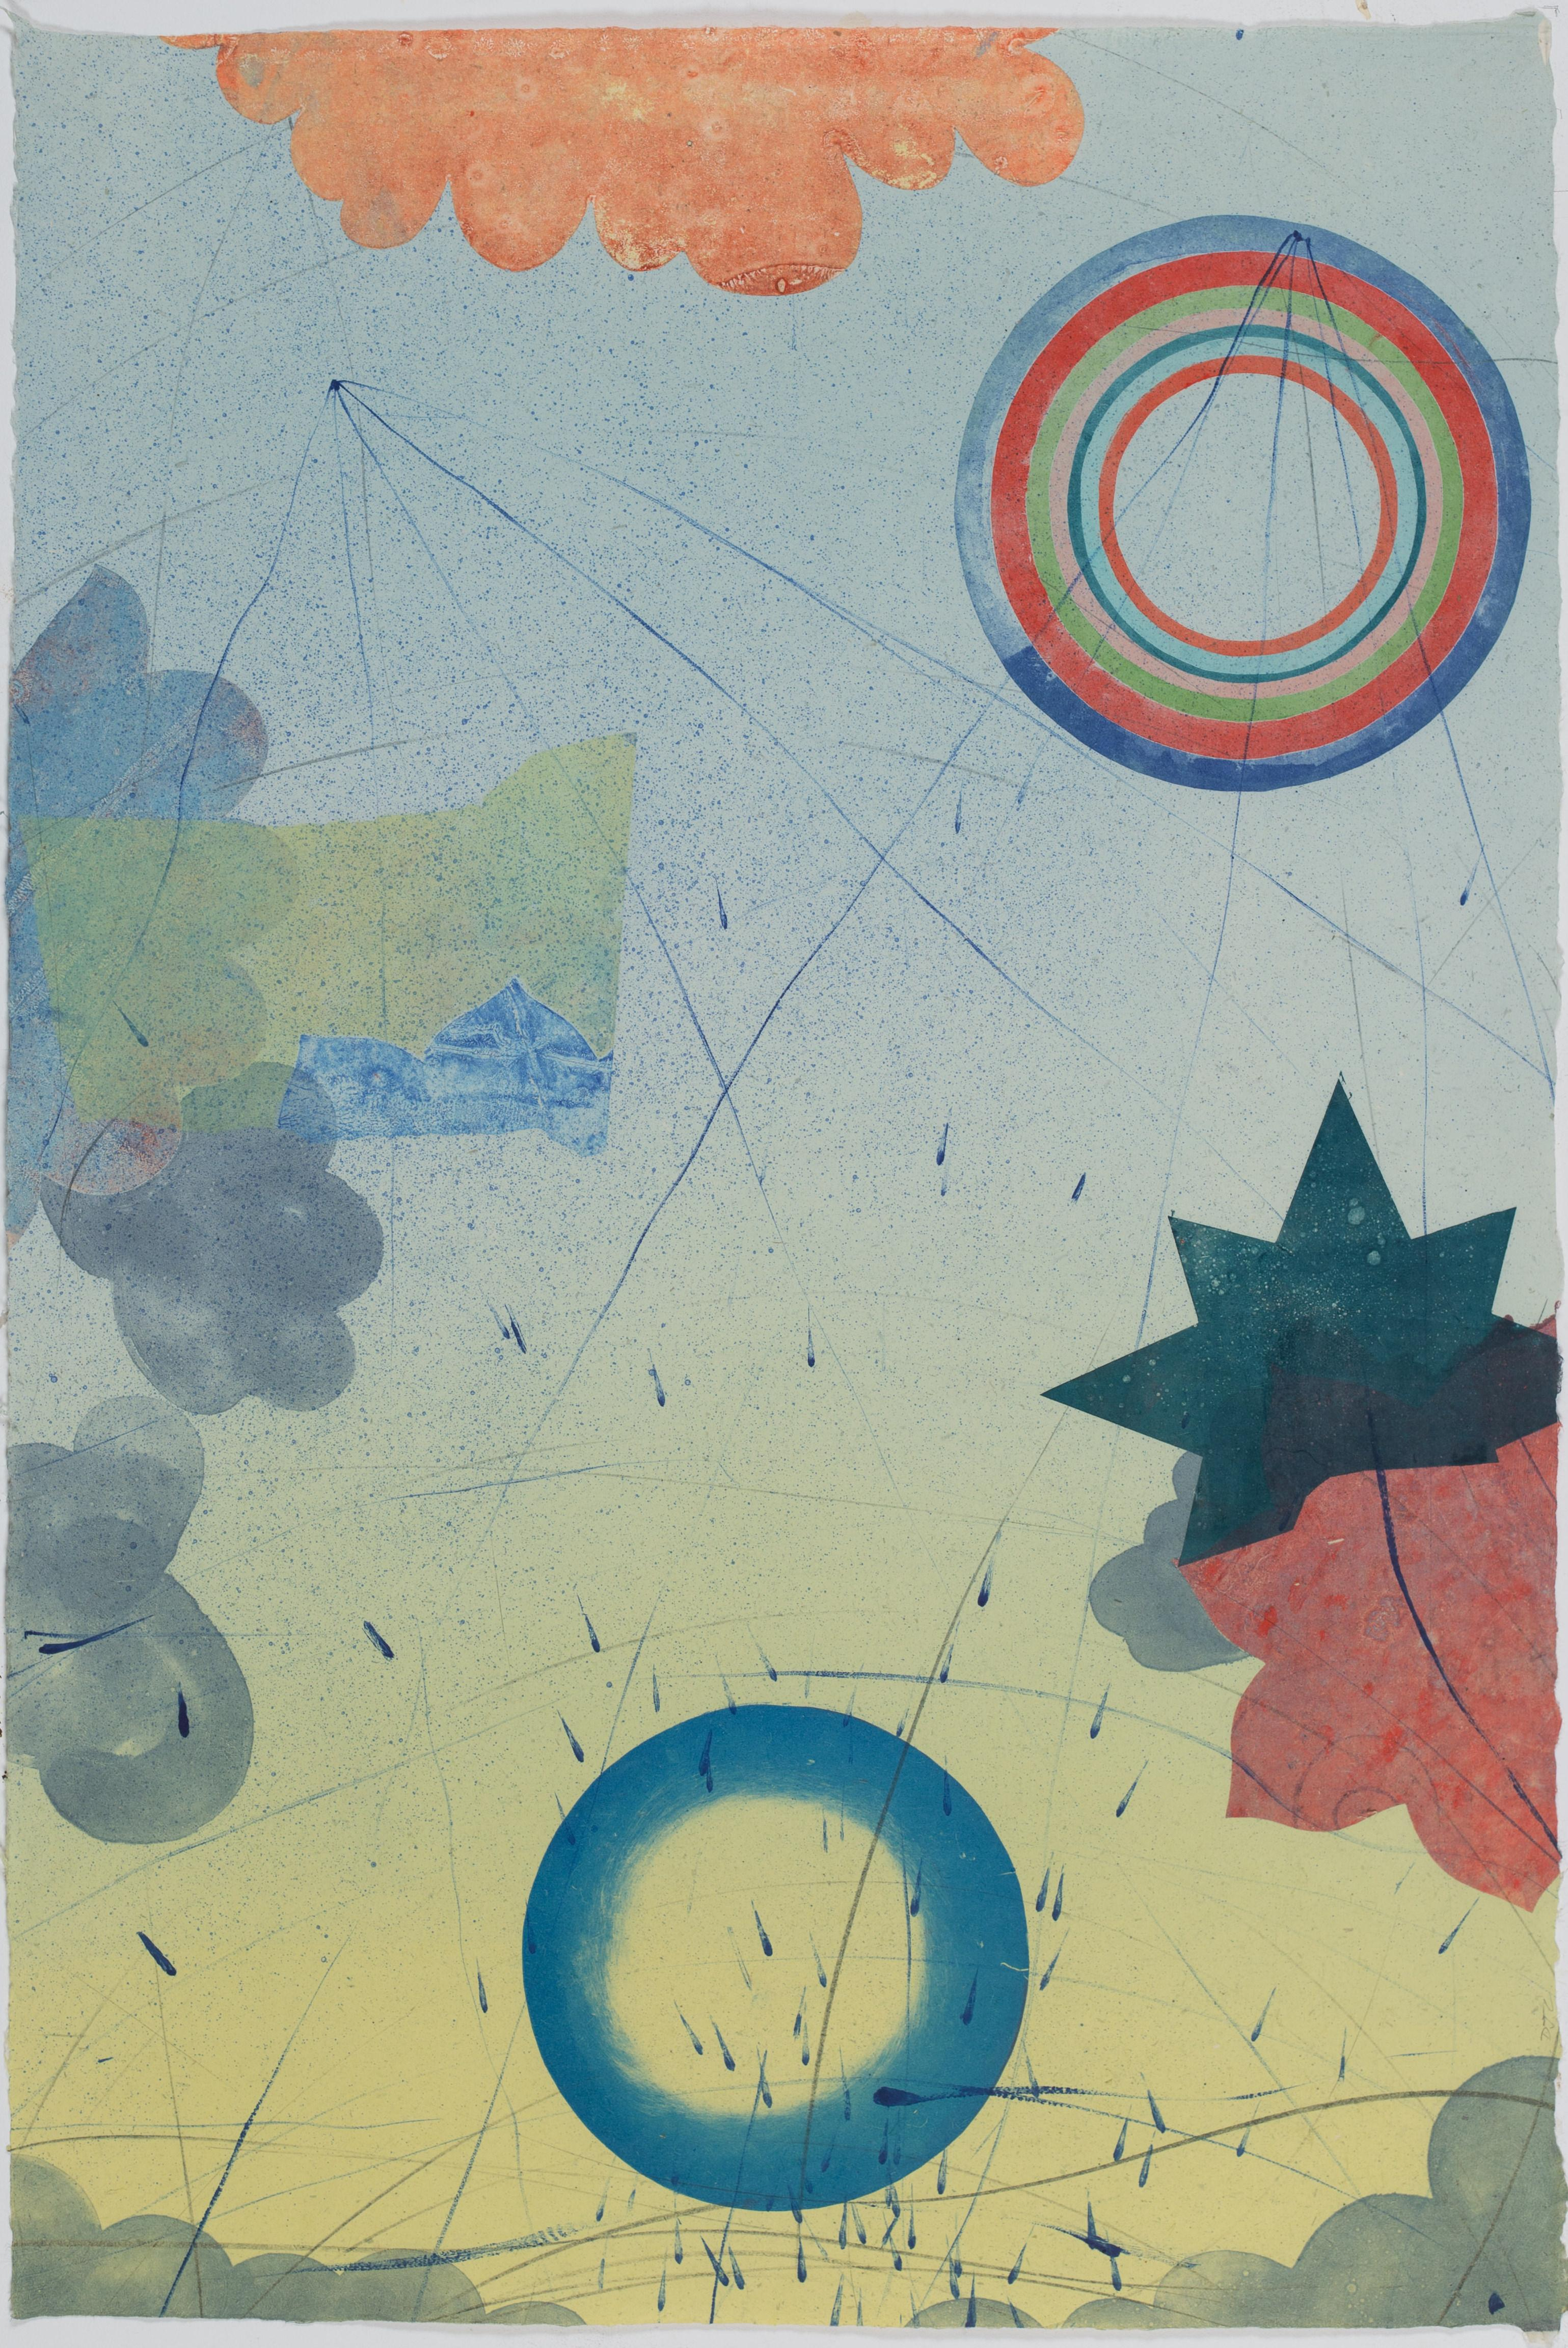 Pilot 22, Vertical Abstract Monotype in Teal Blue, Yellow, Coral, Circles, Stars